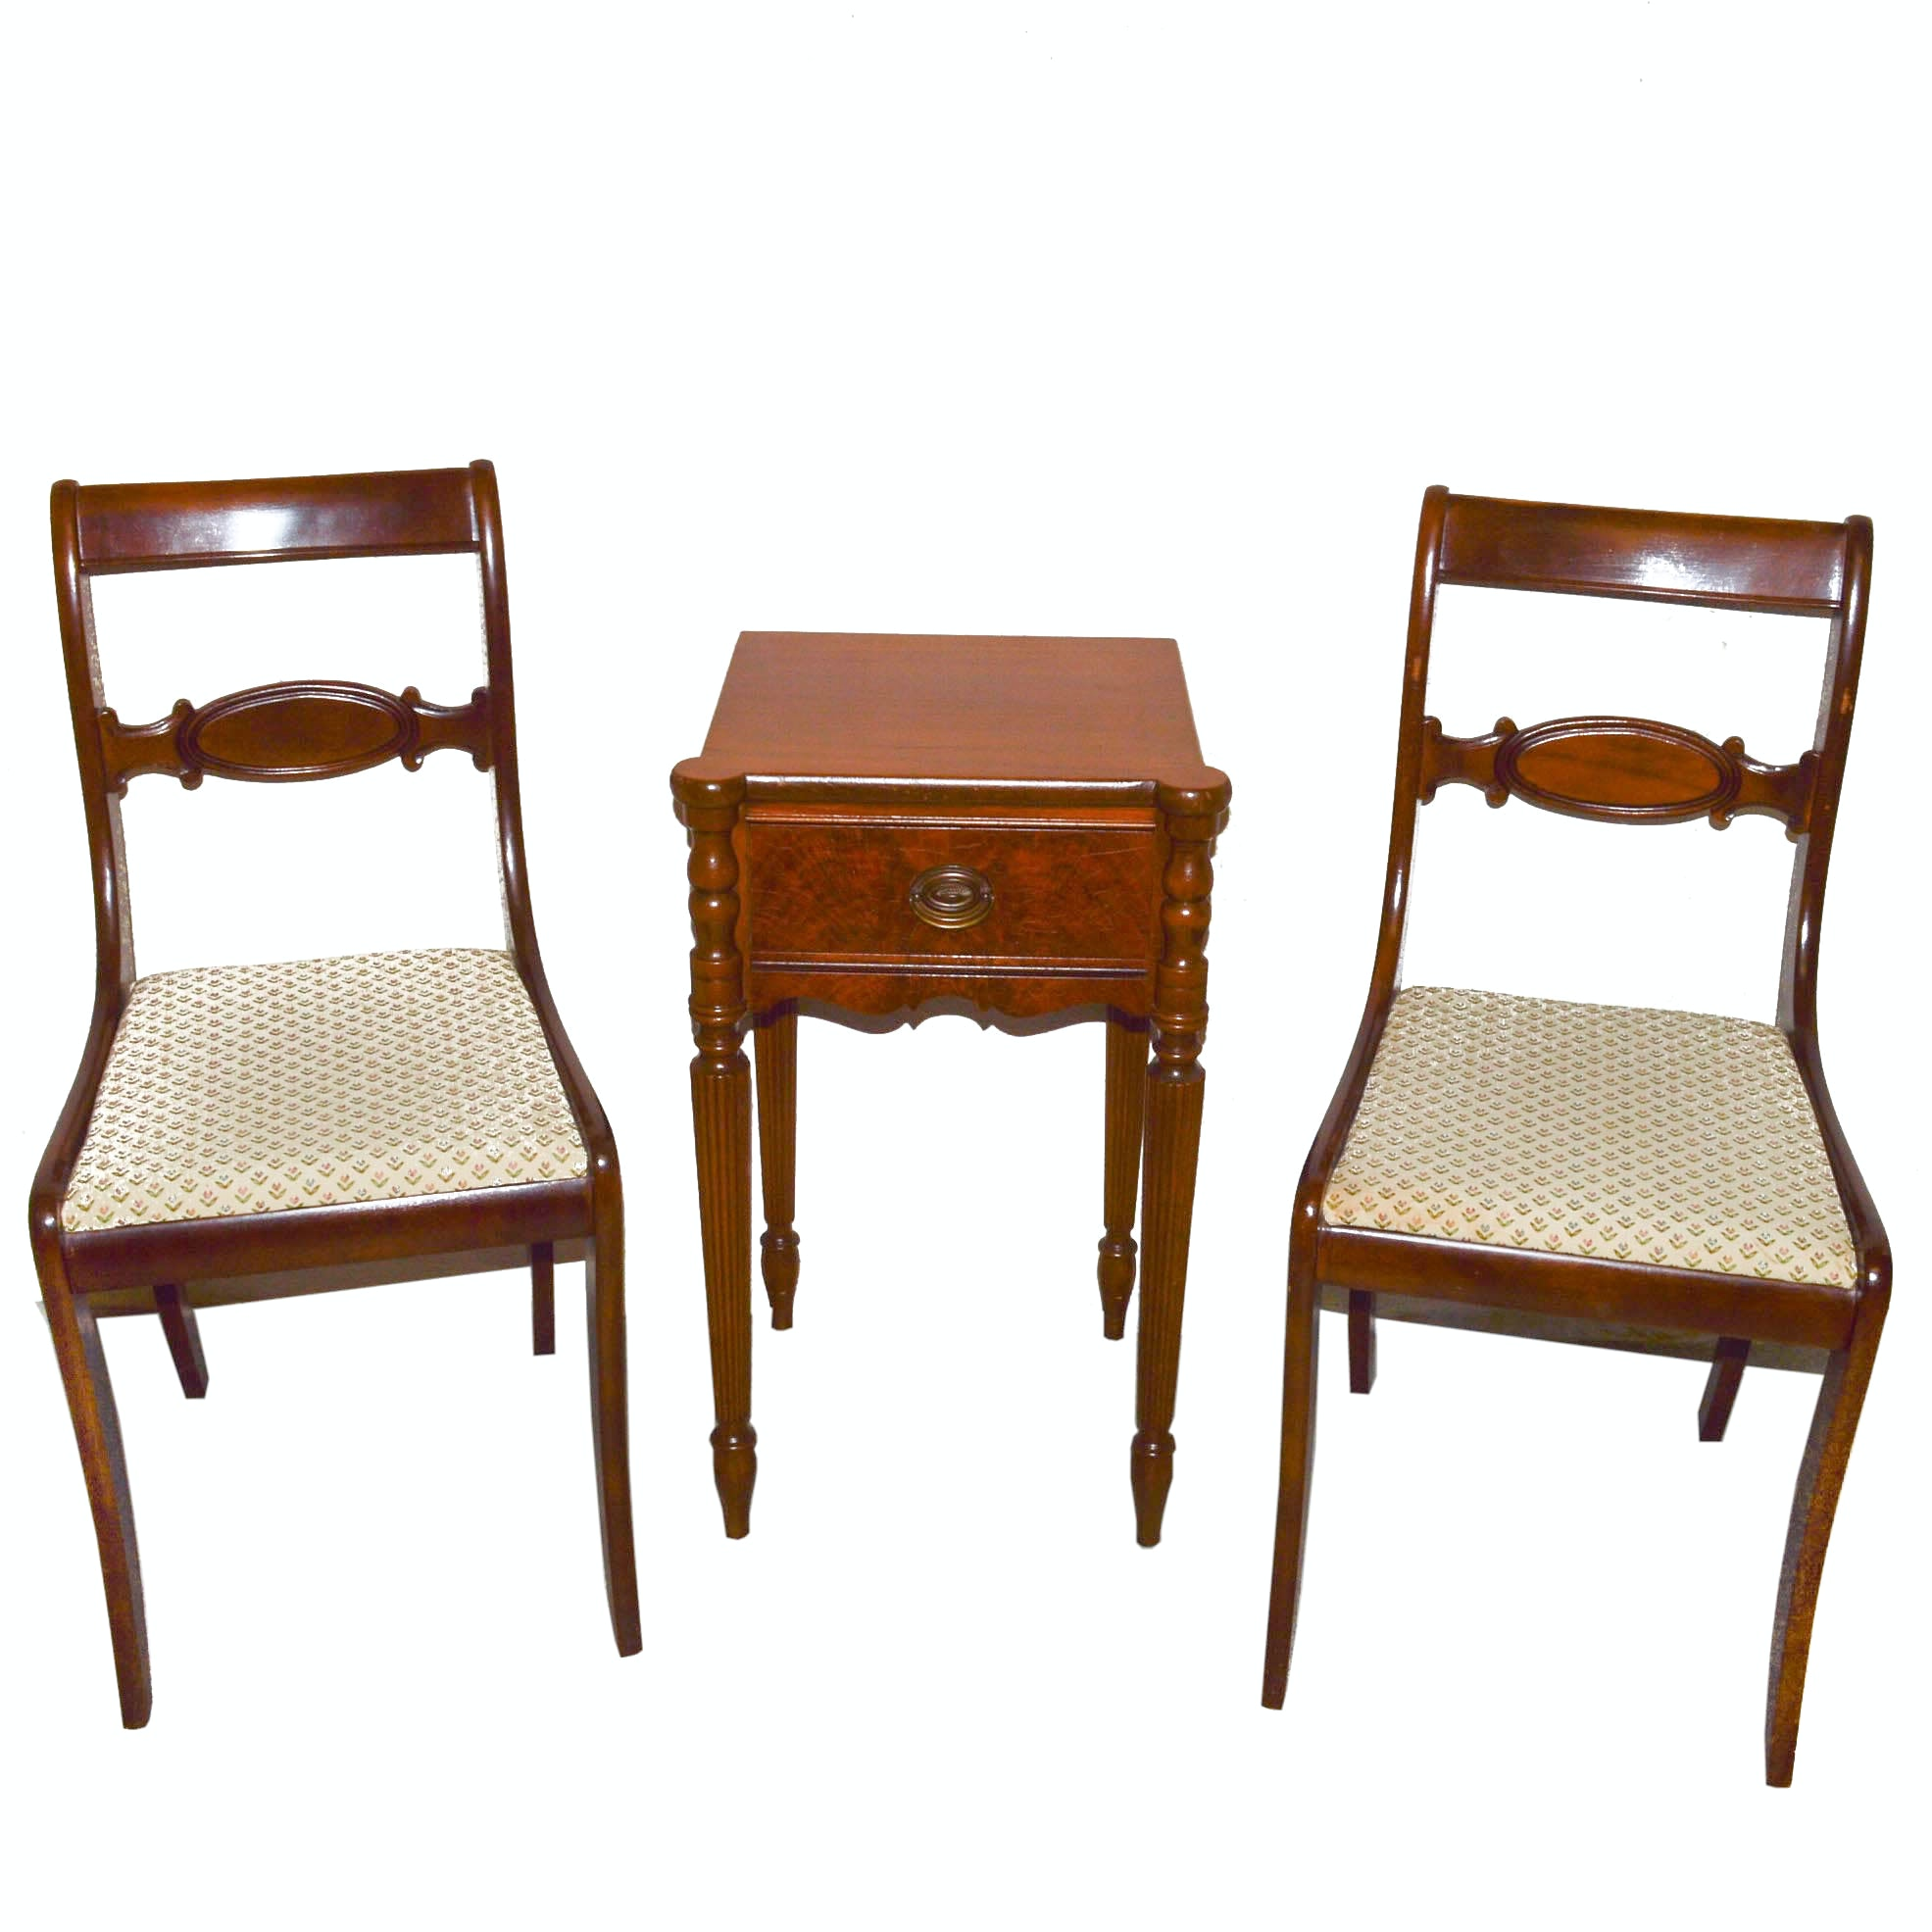 Pair of Regency Style Chairs and Sheraton Style Accent Table